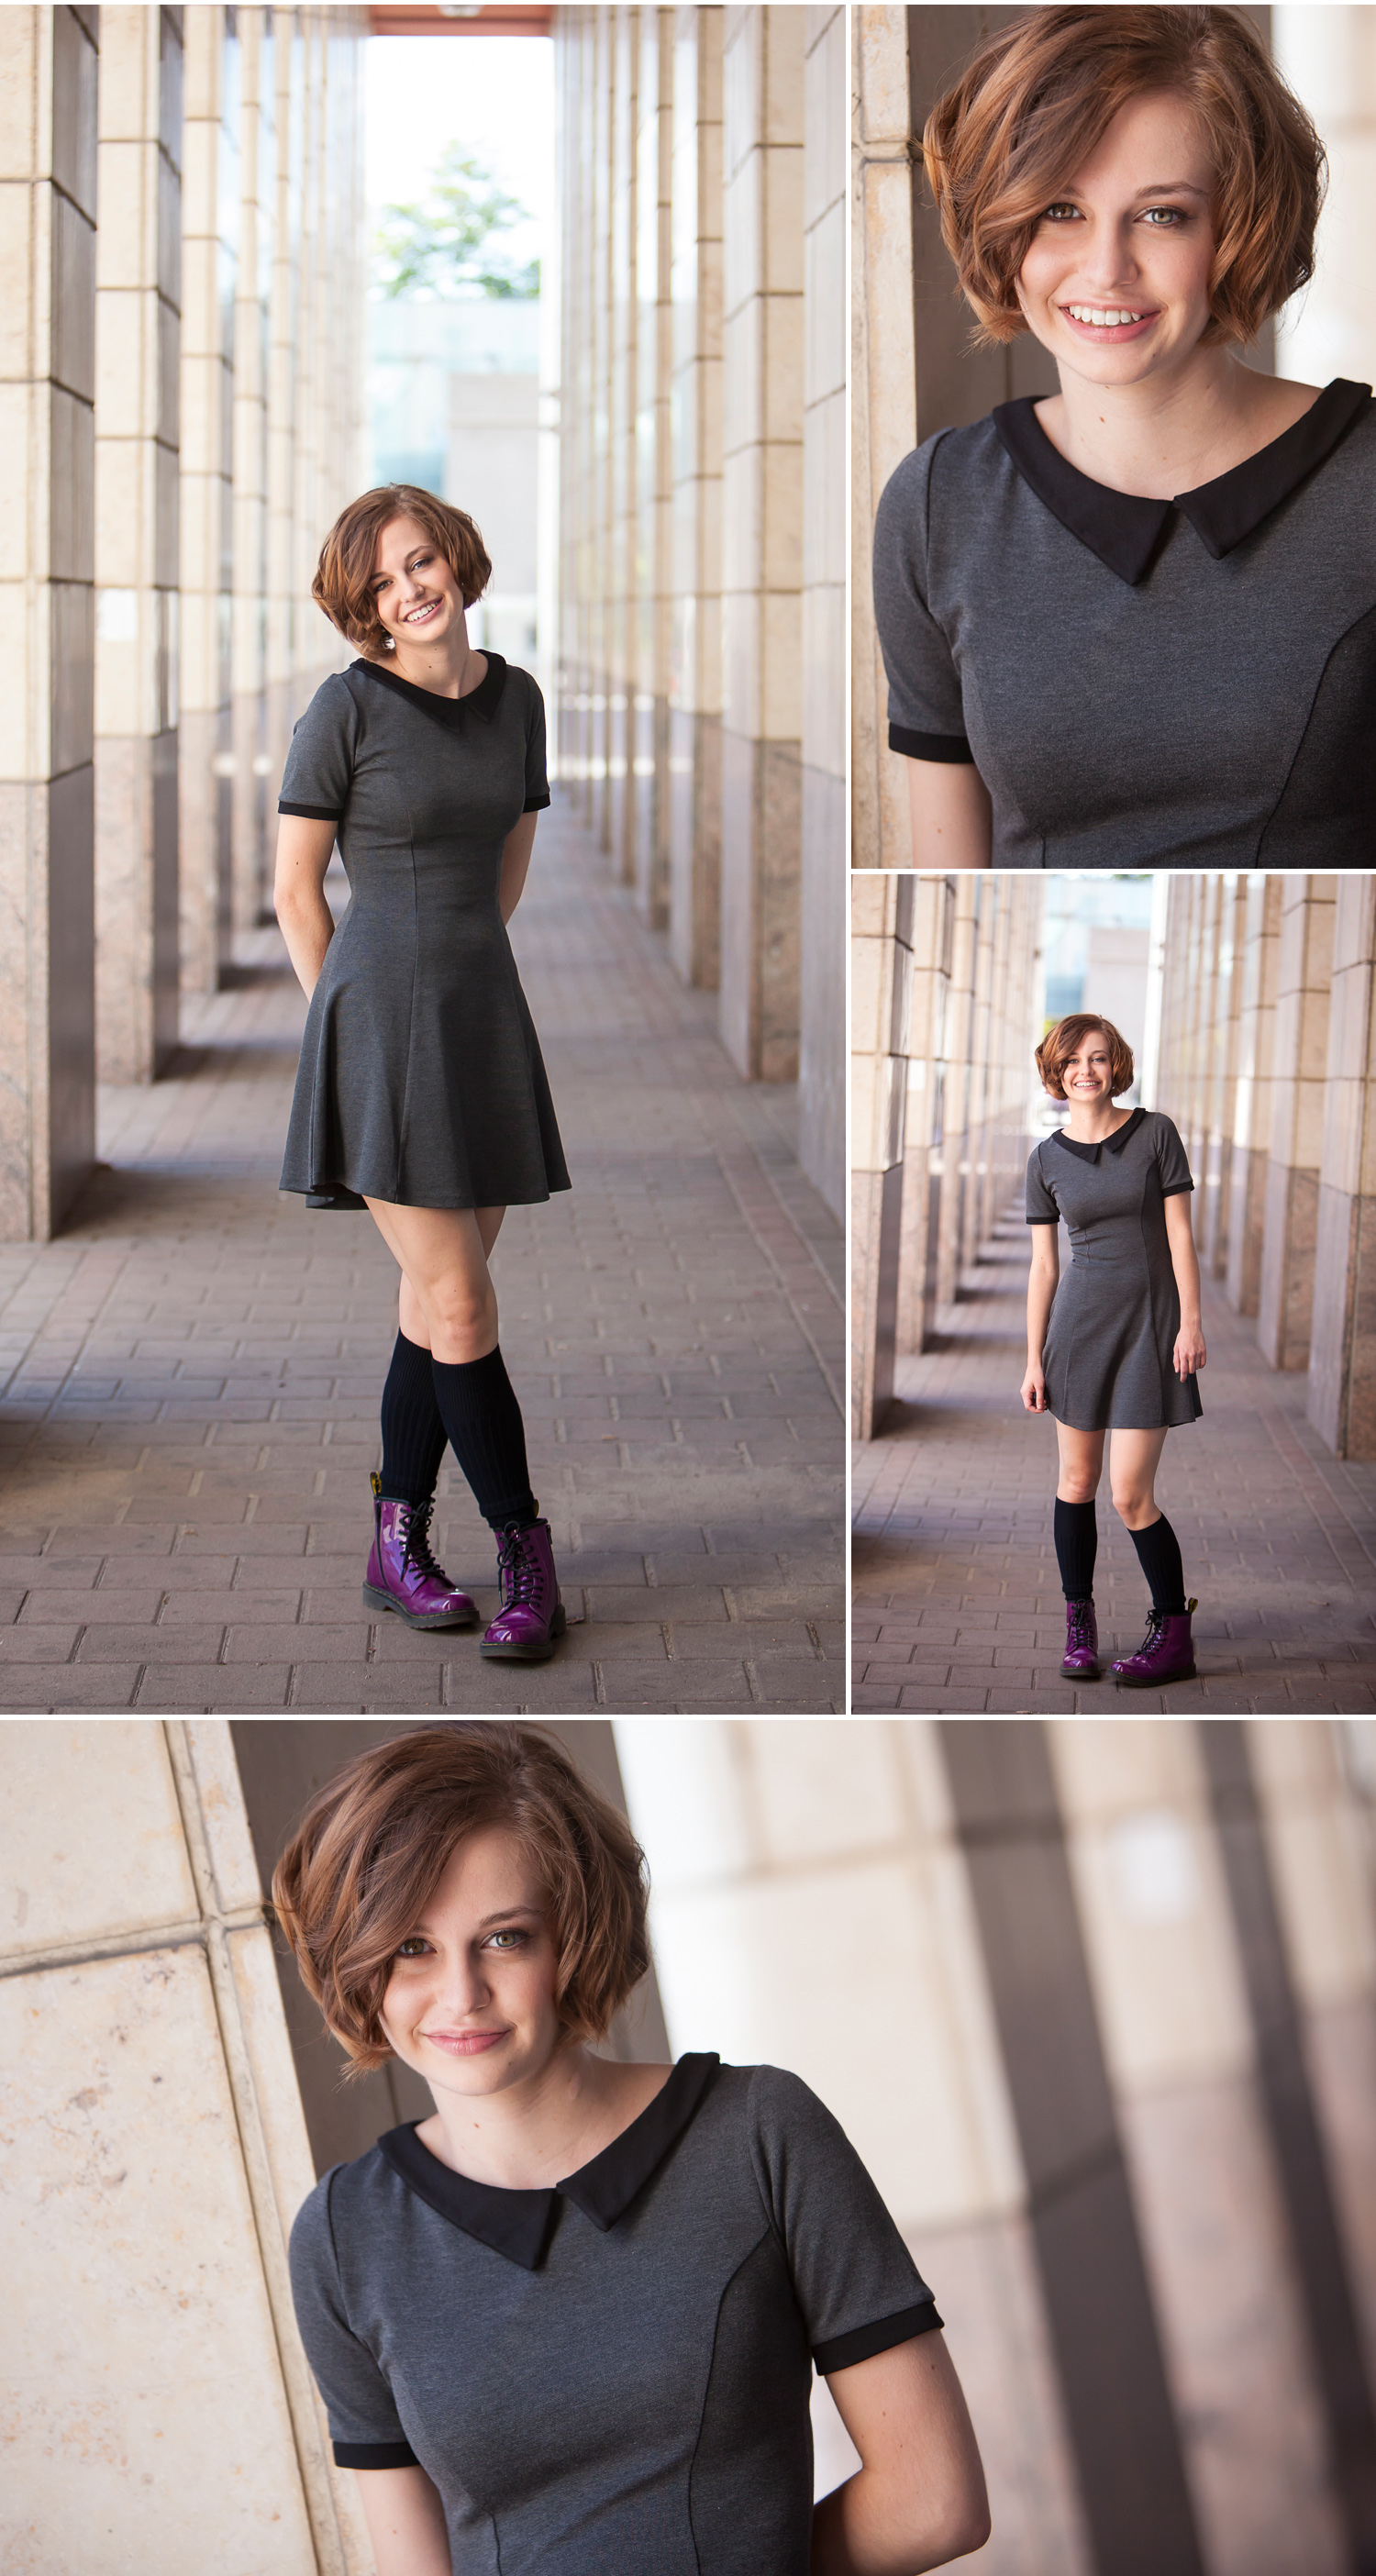 High School Senior Pictures with purple Doc Martins, photographed in columns outside Denver Public Library, with photographer Jennifer Koskinen of Merritt Portrait Studio